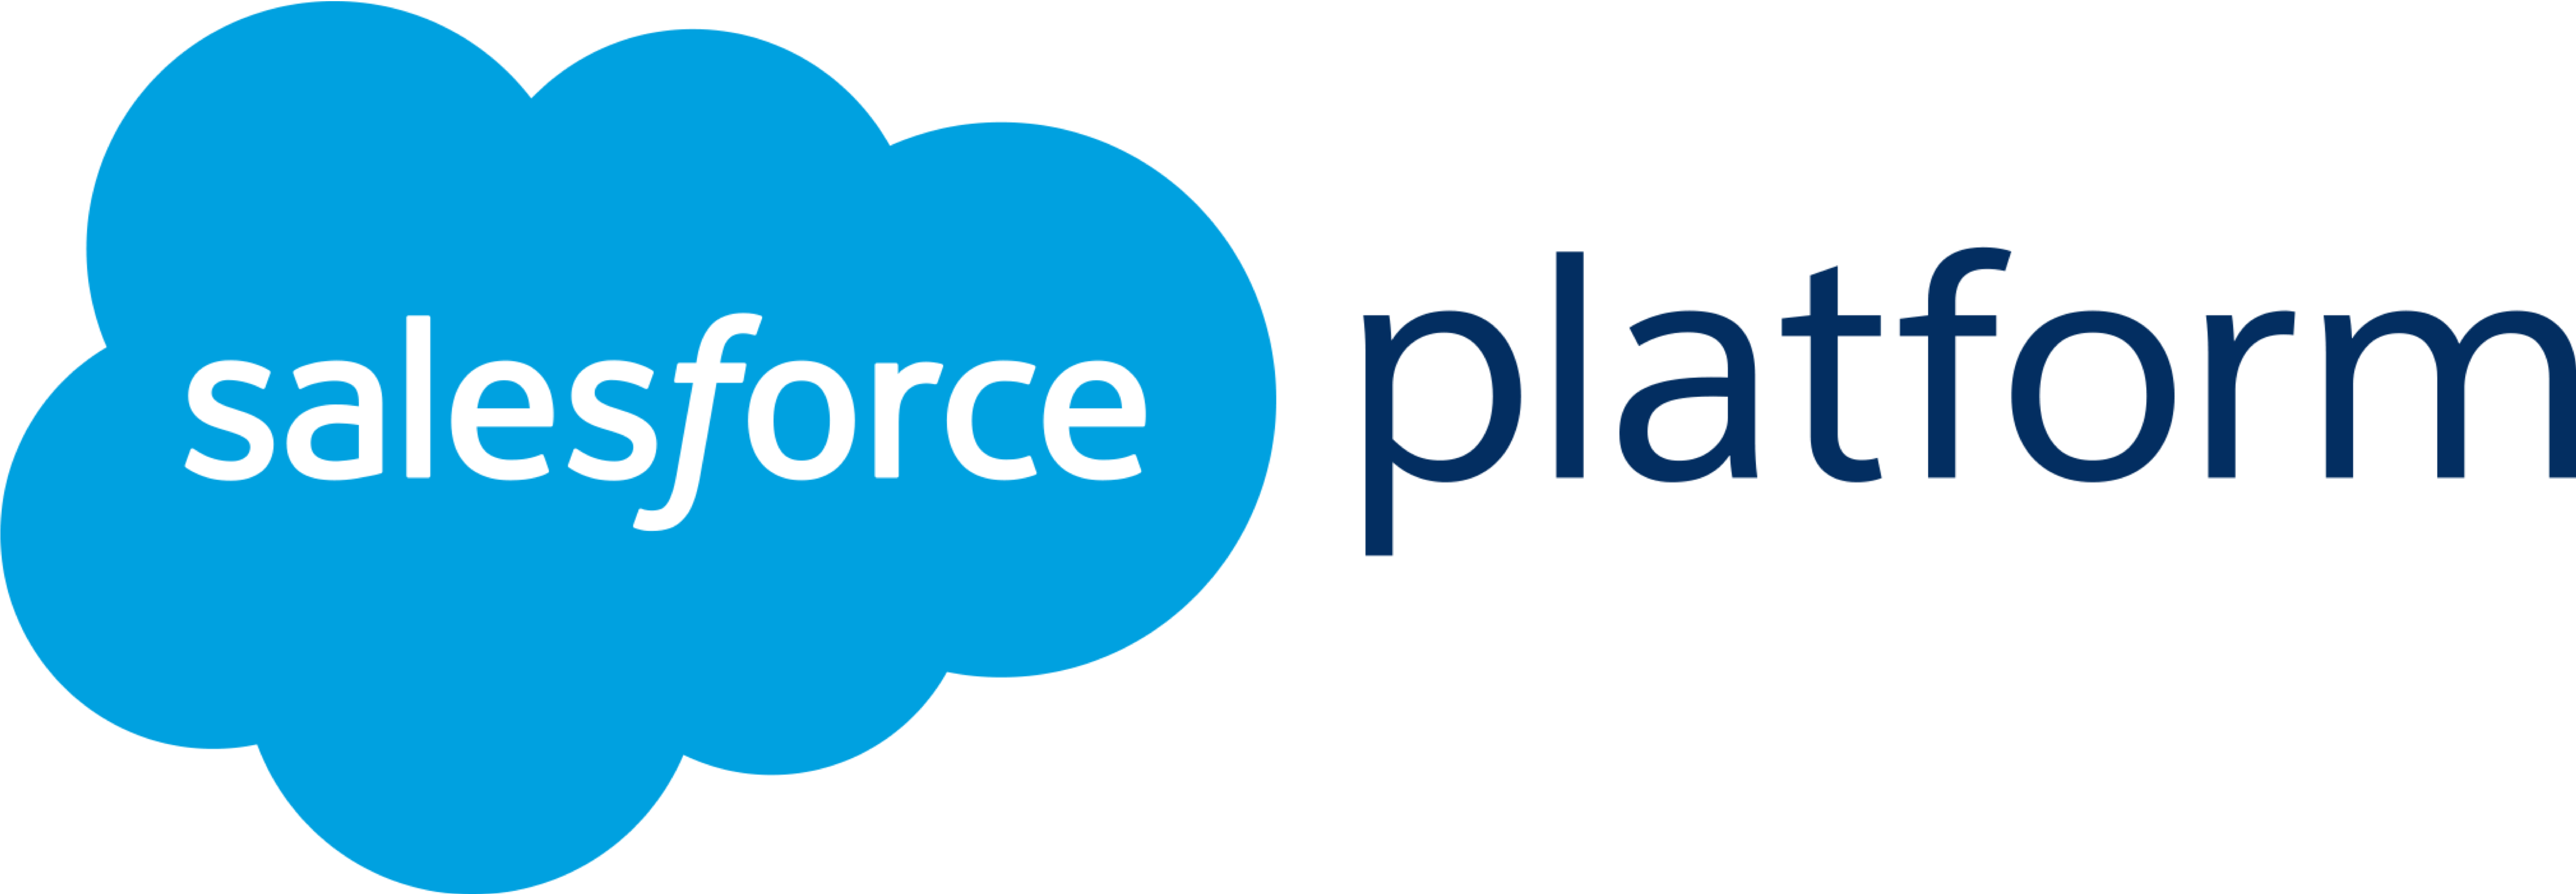 Salesforce Platform logo